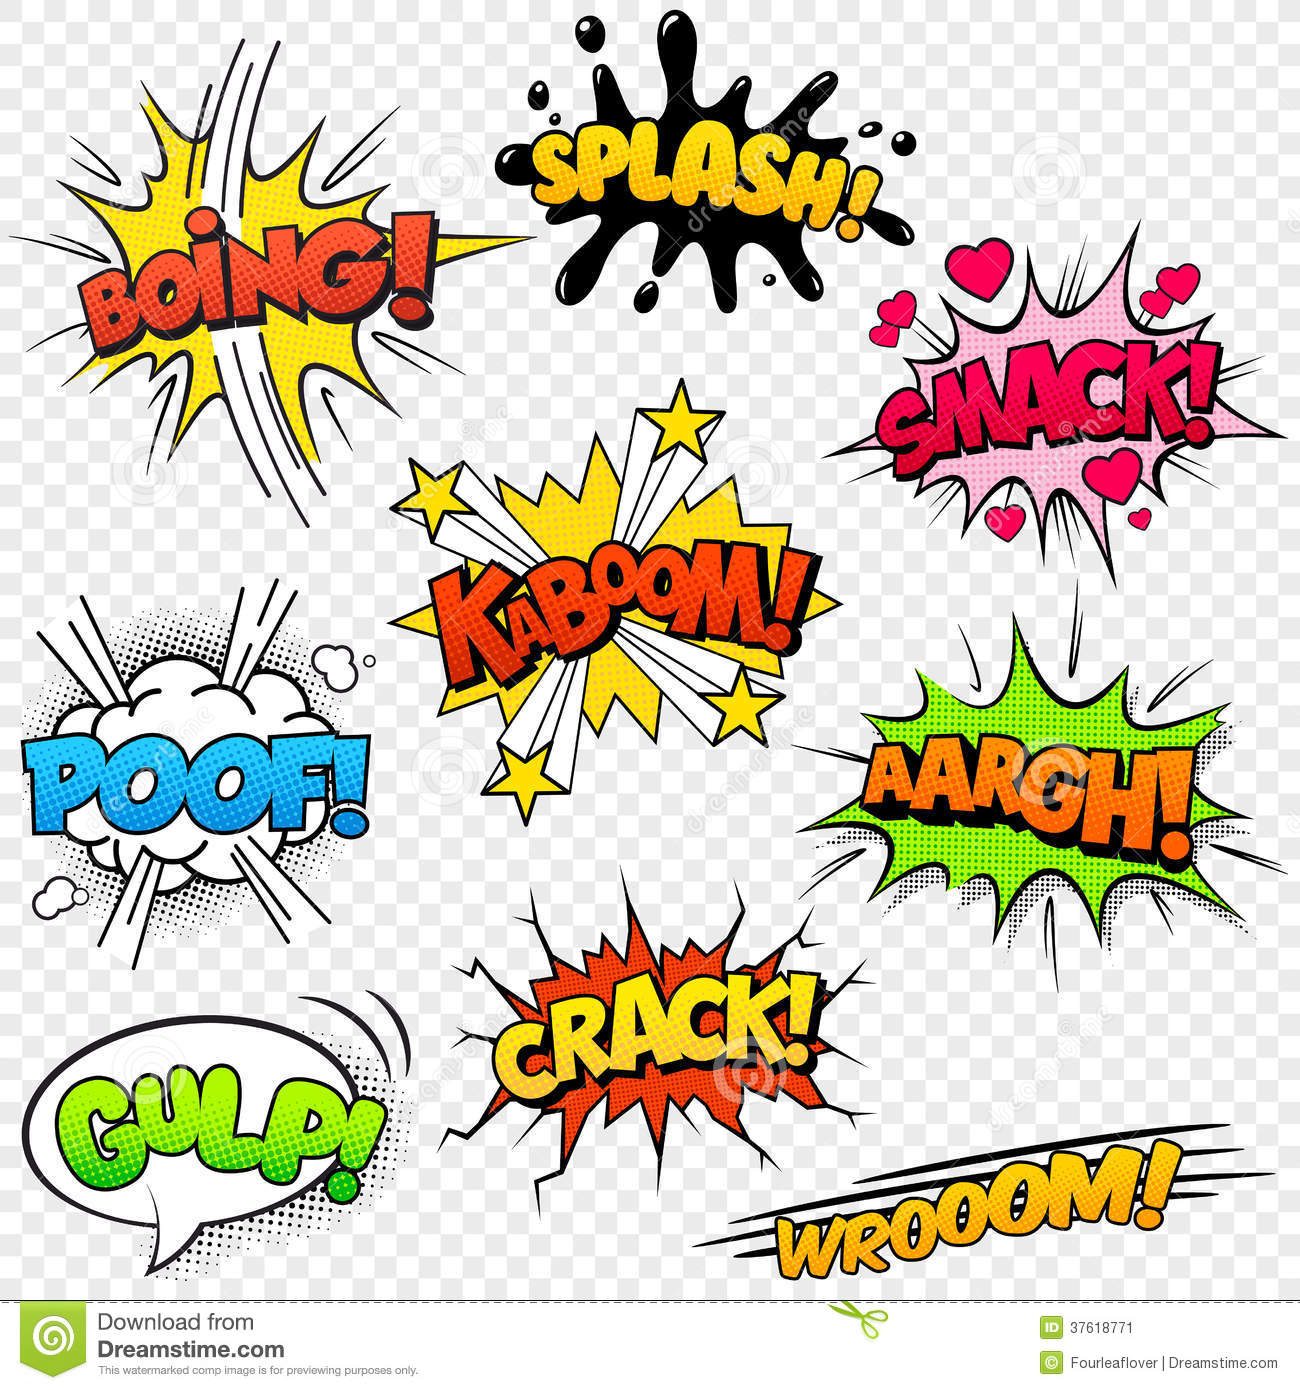 Comic clipart hero word Image: Image: Effects Image Comic